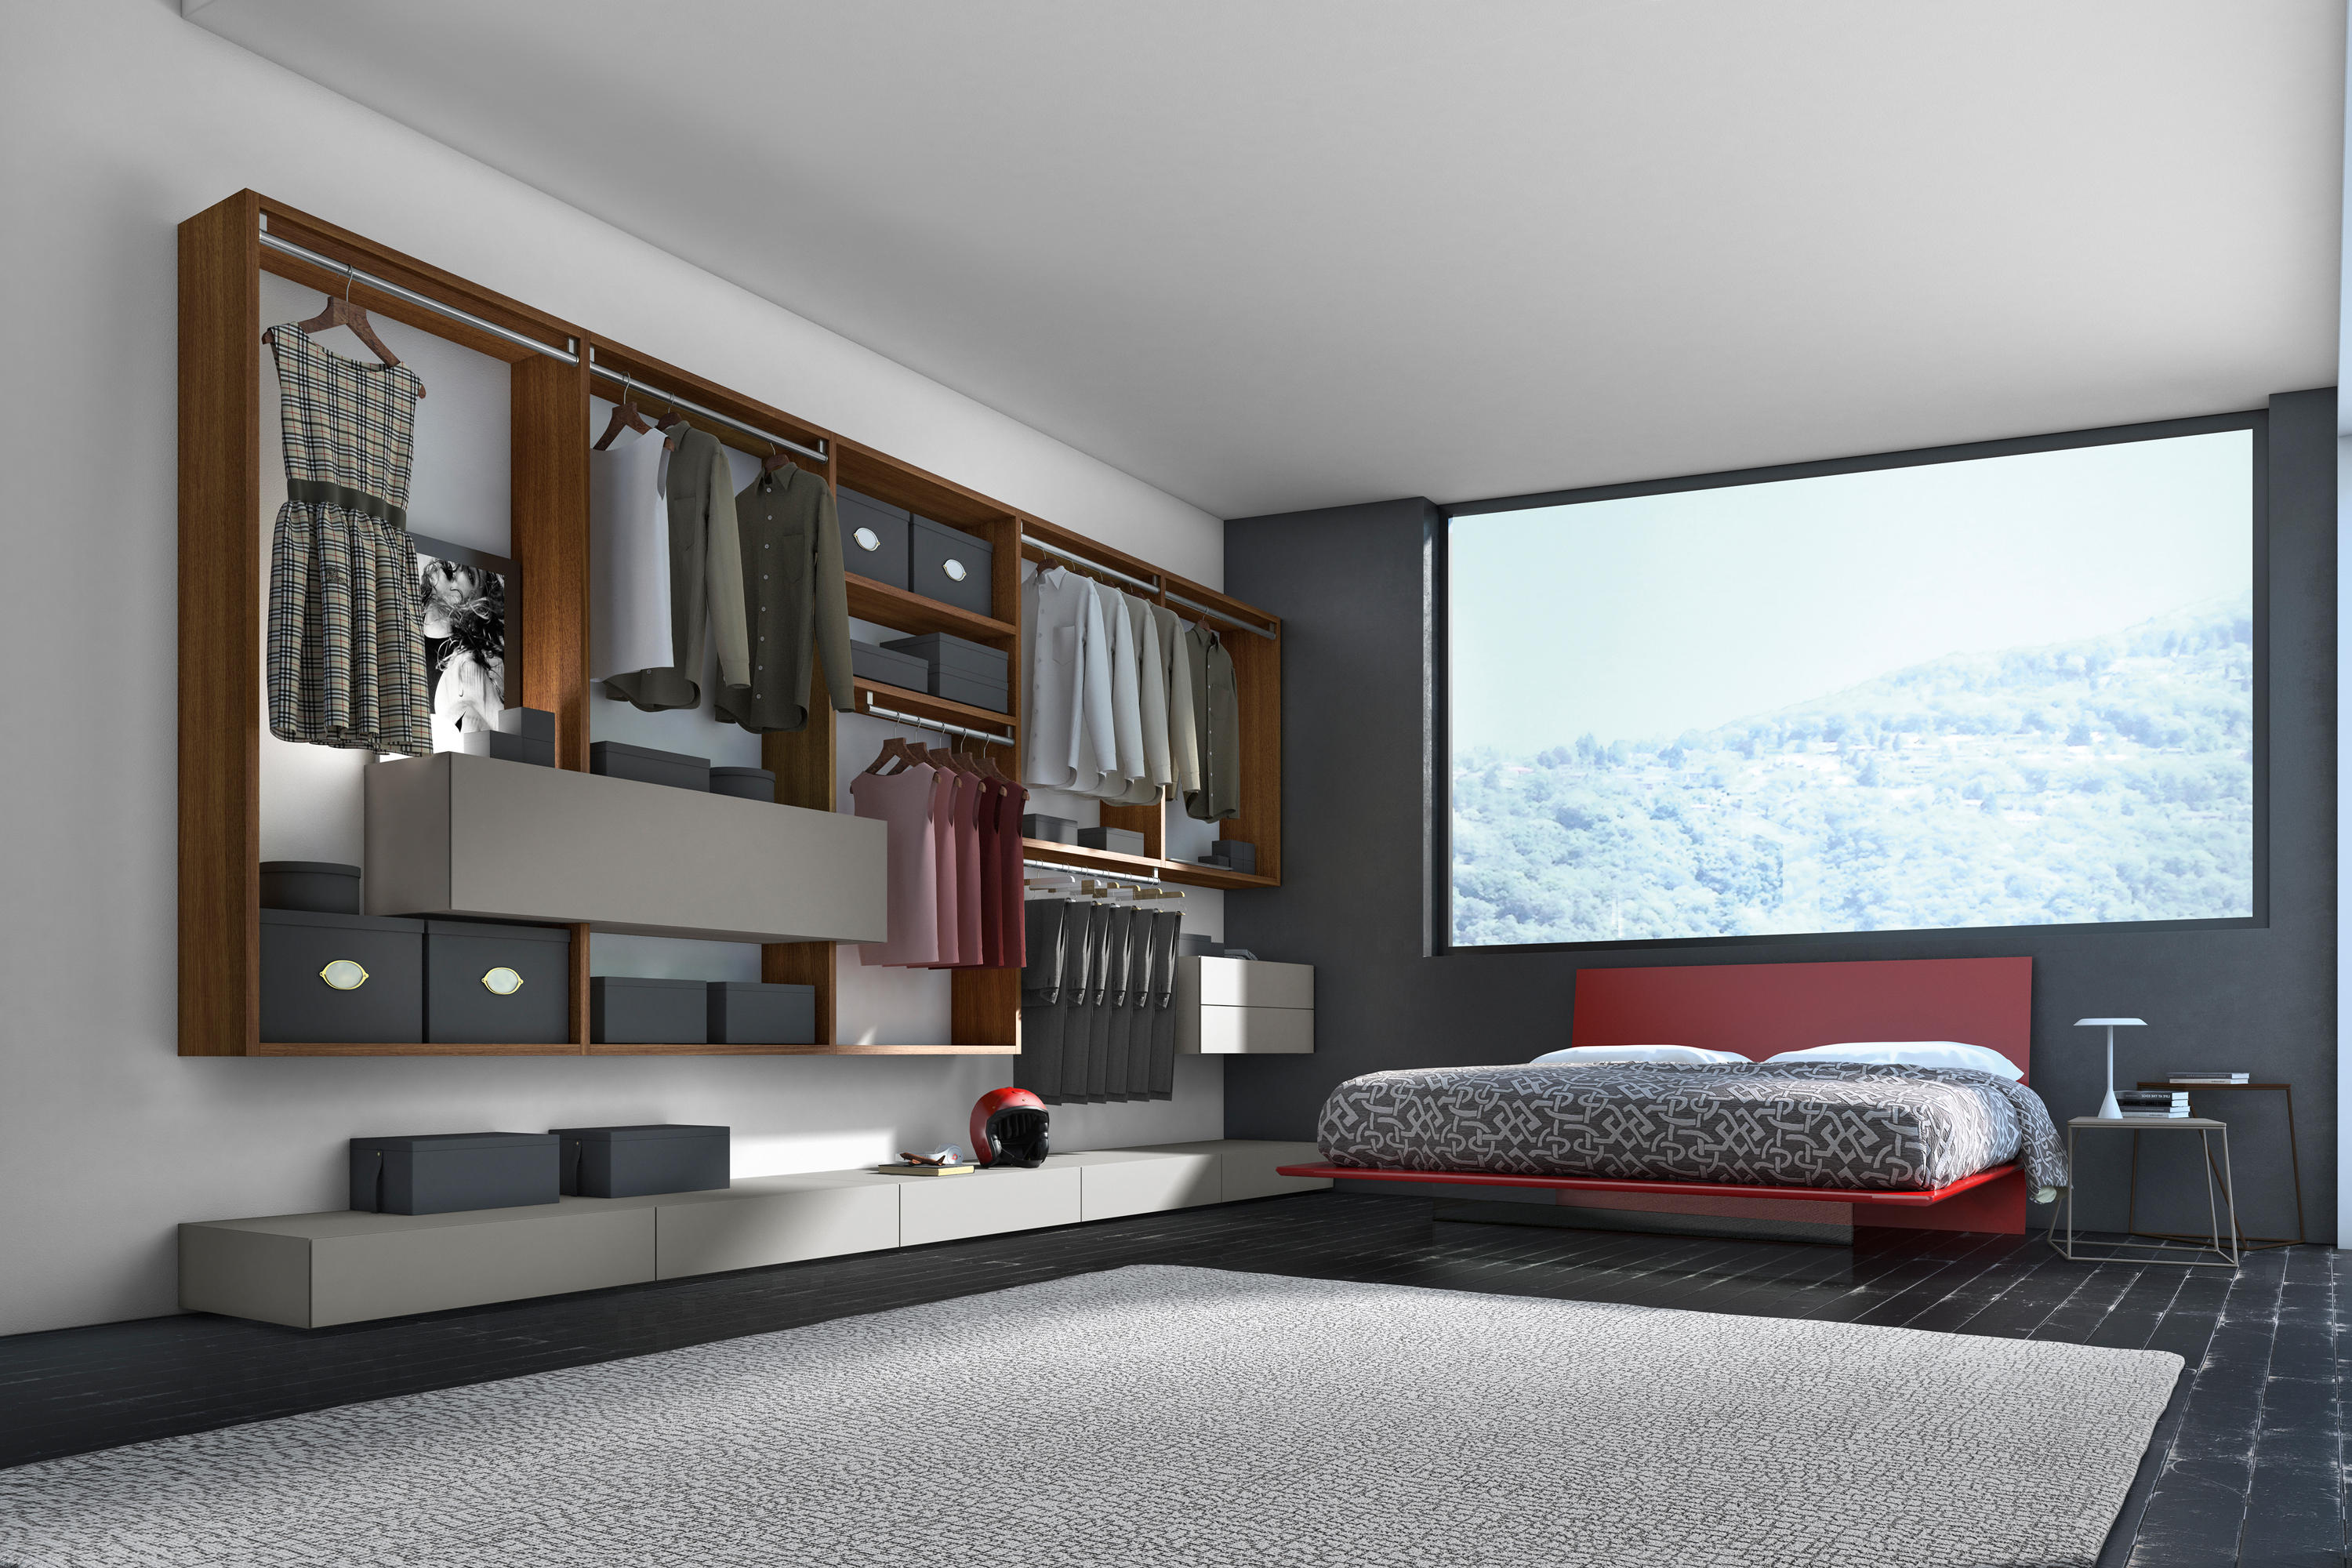 crossart zusammenstellung als begehbarer kleiderschrank. Black Bedroom Furniture Sets. Home Design Ideas